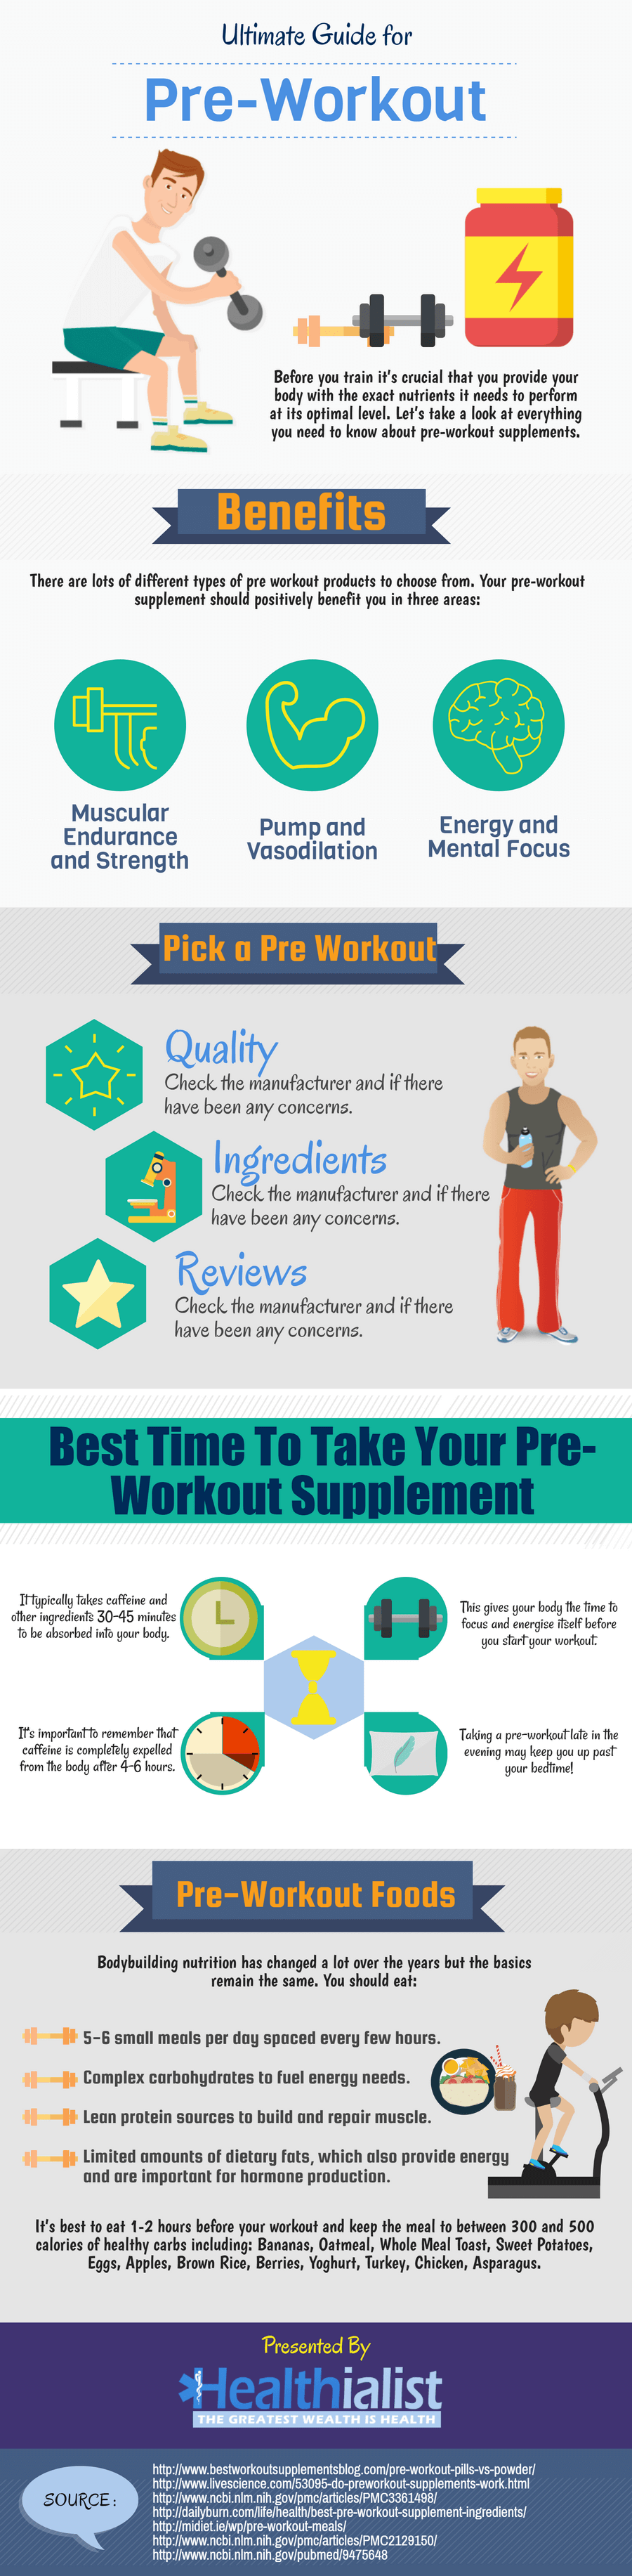 Pre-workout supplemets infographic